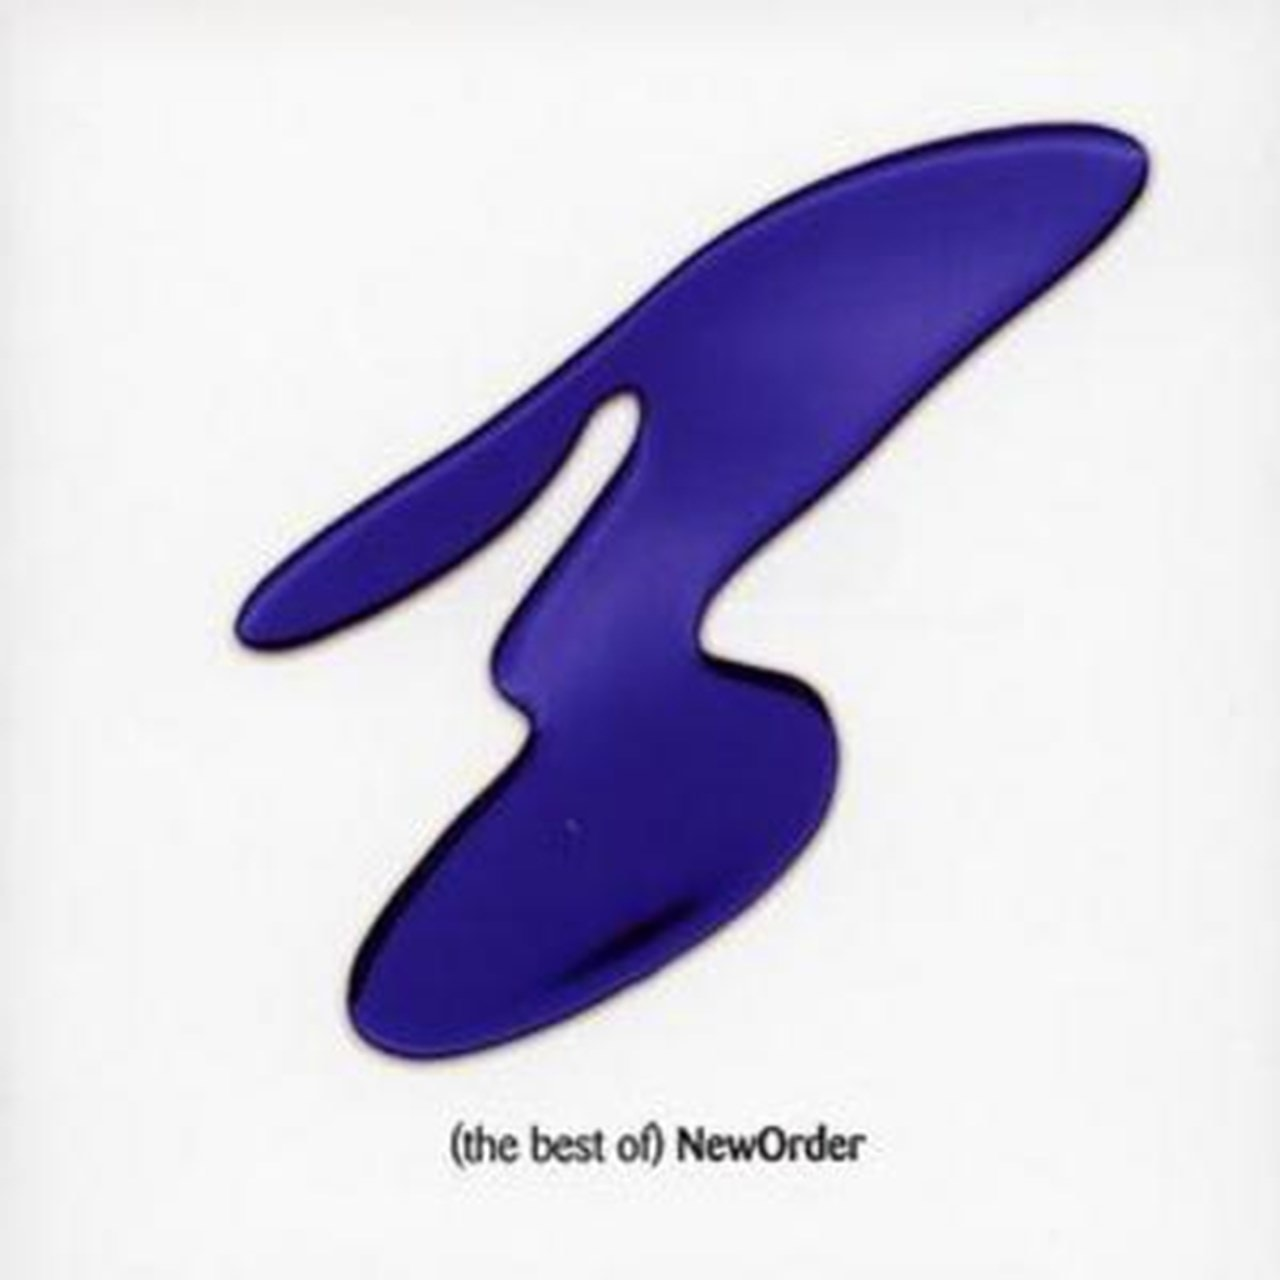 New Order: (The Best Of) - 1